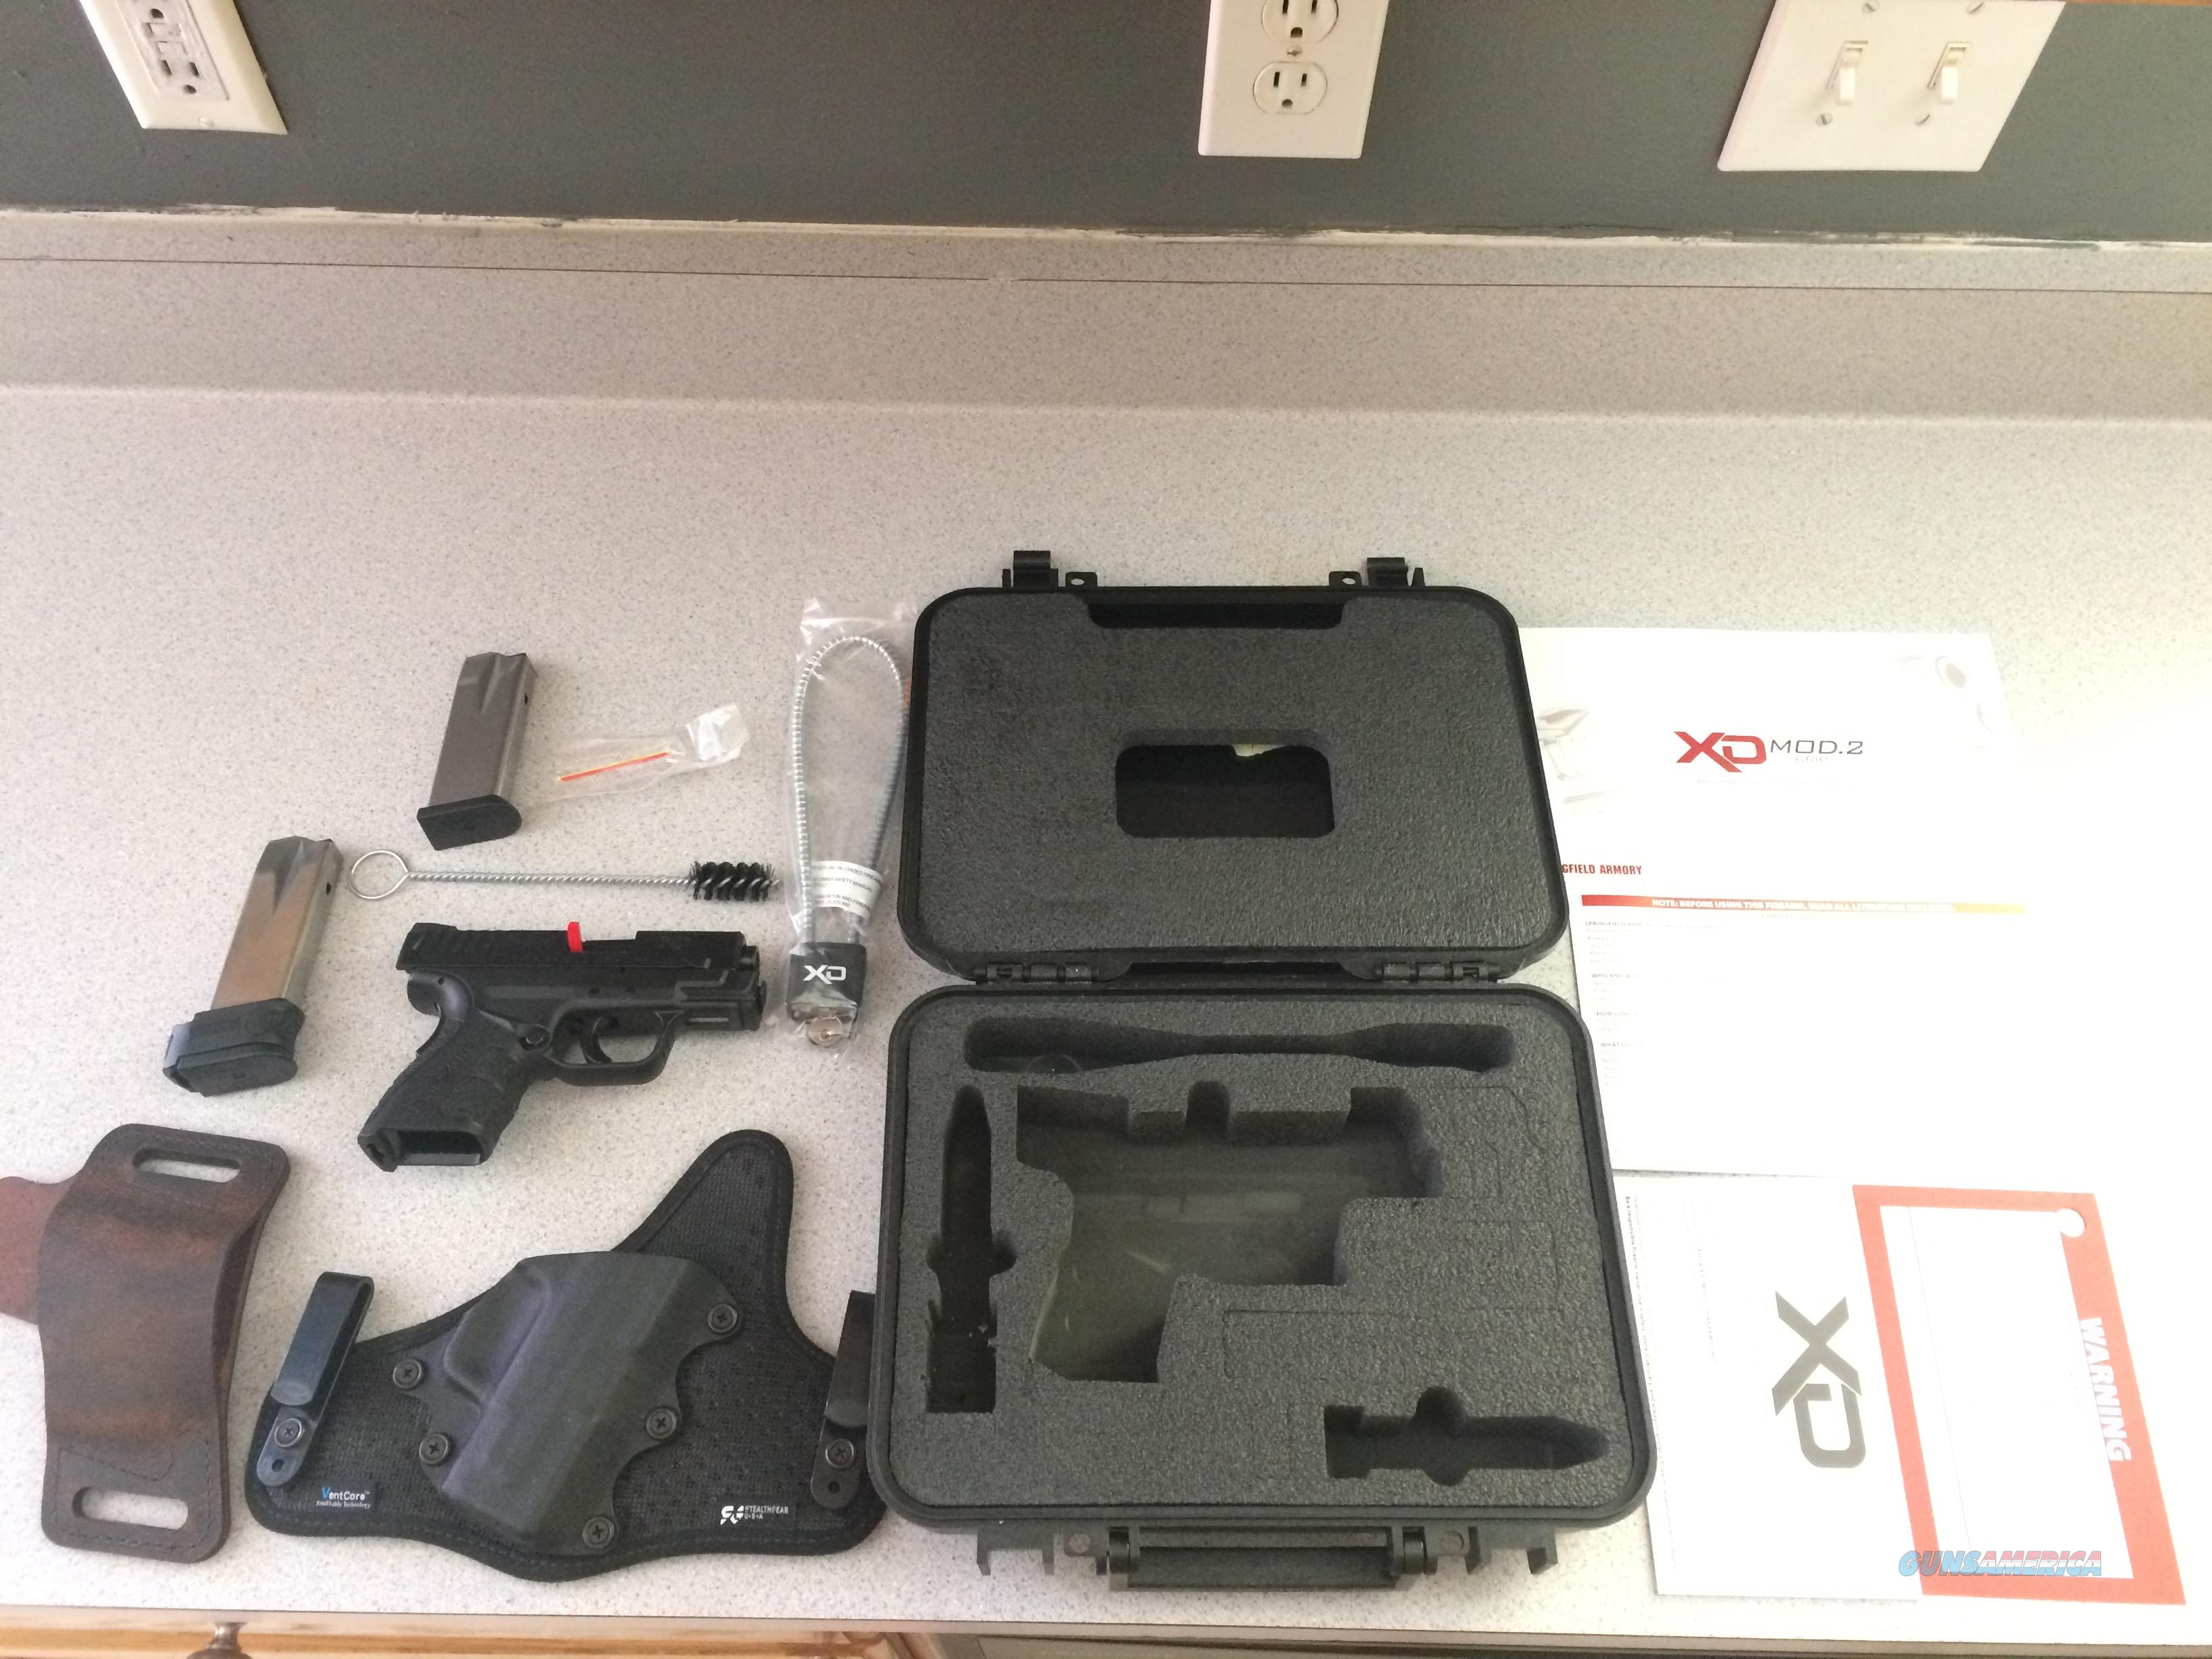 "Springfield XD Mod2 Subcompact 3.3"" Barrel 9mm W/ 3 Holsters  Guns > Pistols > Springfield Armory Pistols > XD-Mod.2"